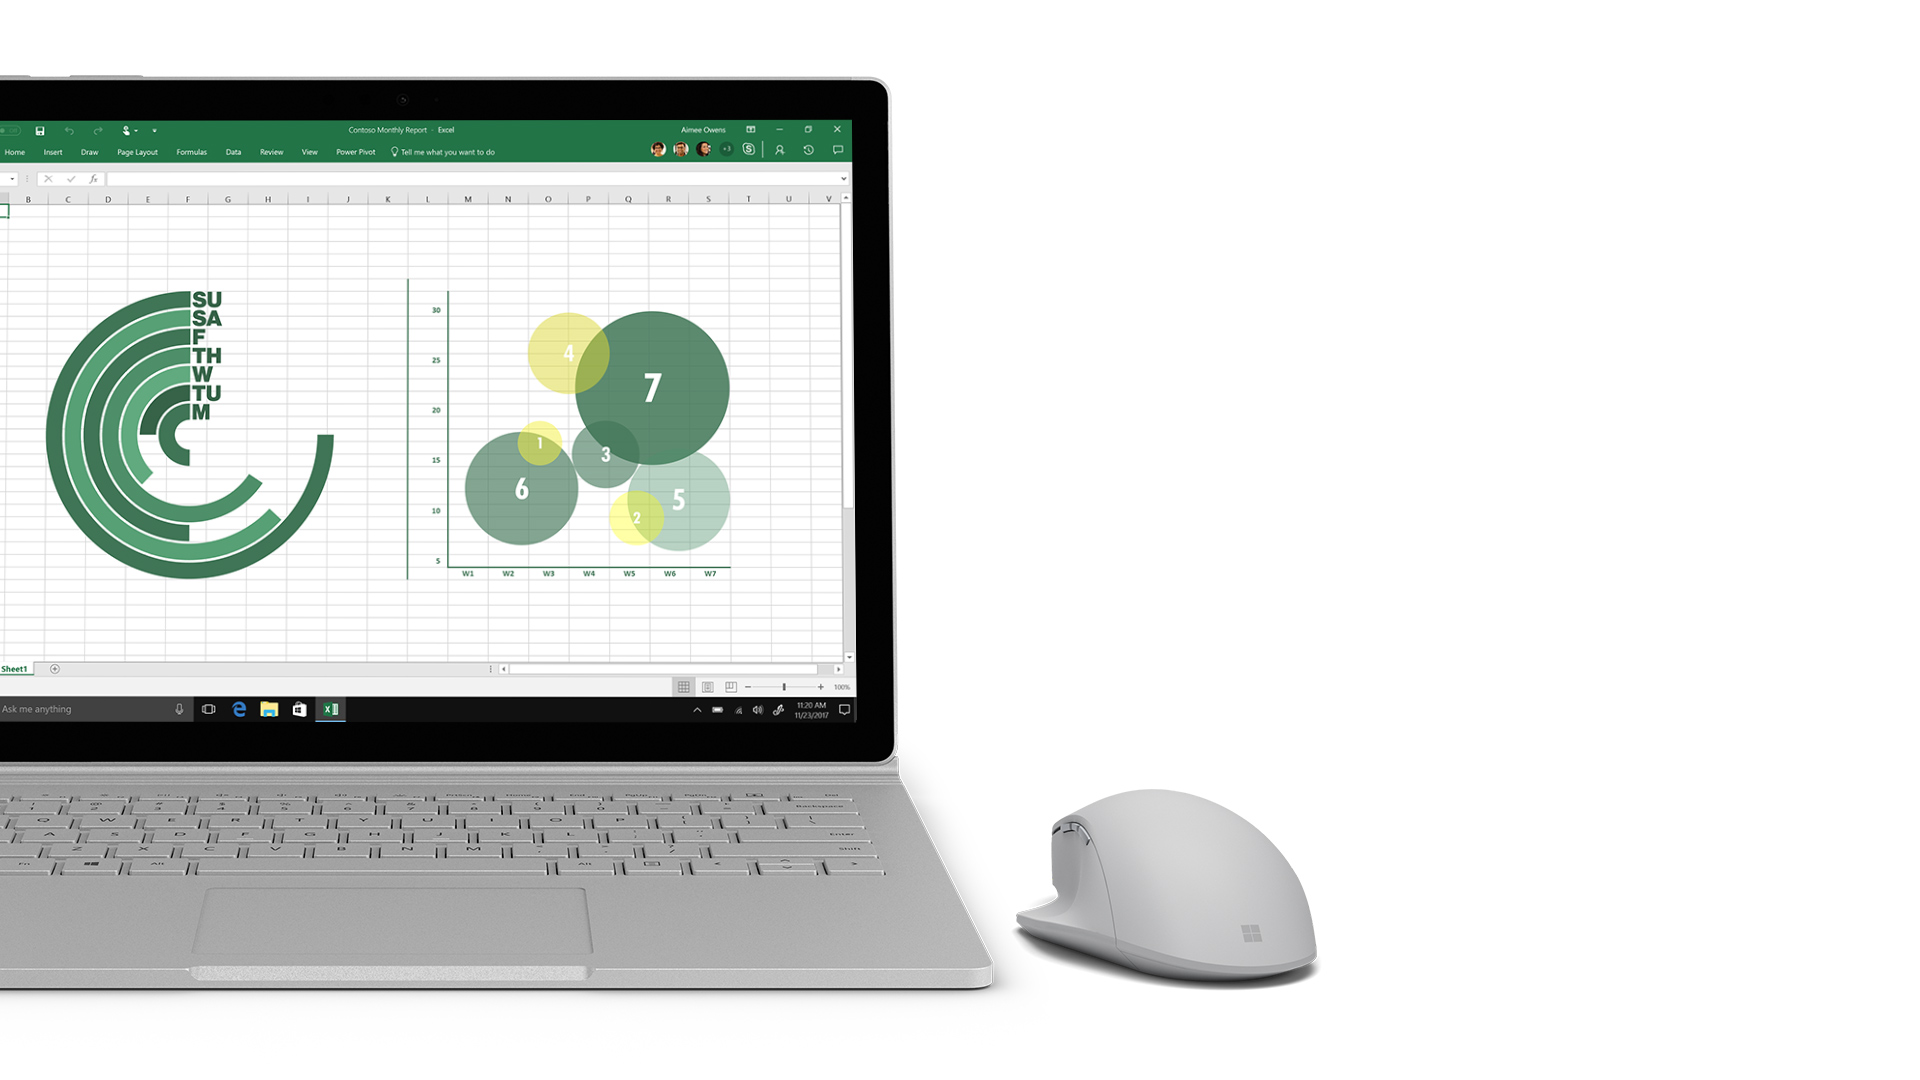 Surface 显示 Excel 屏幕截图。